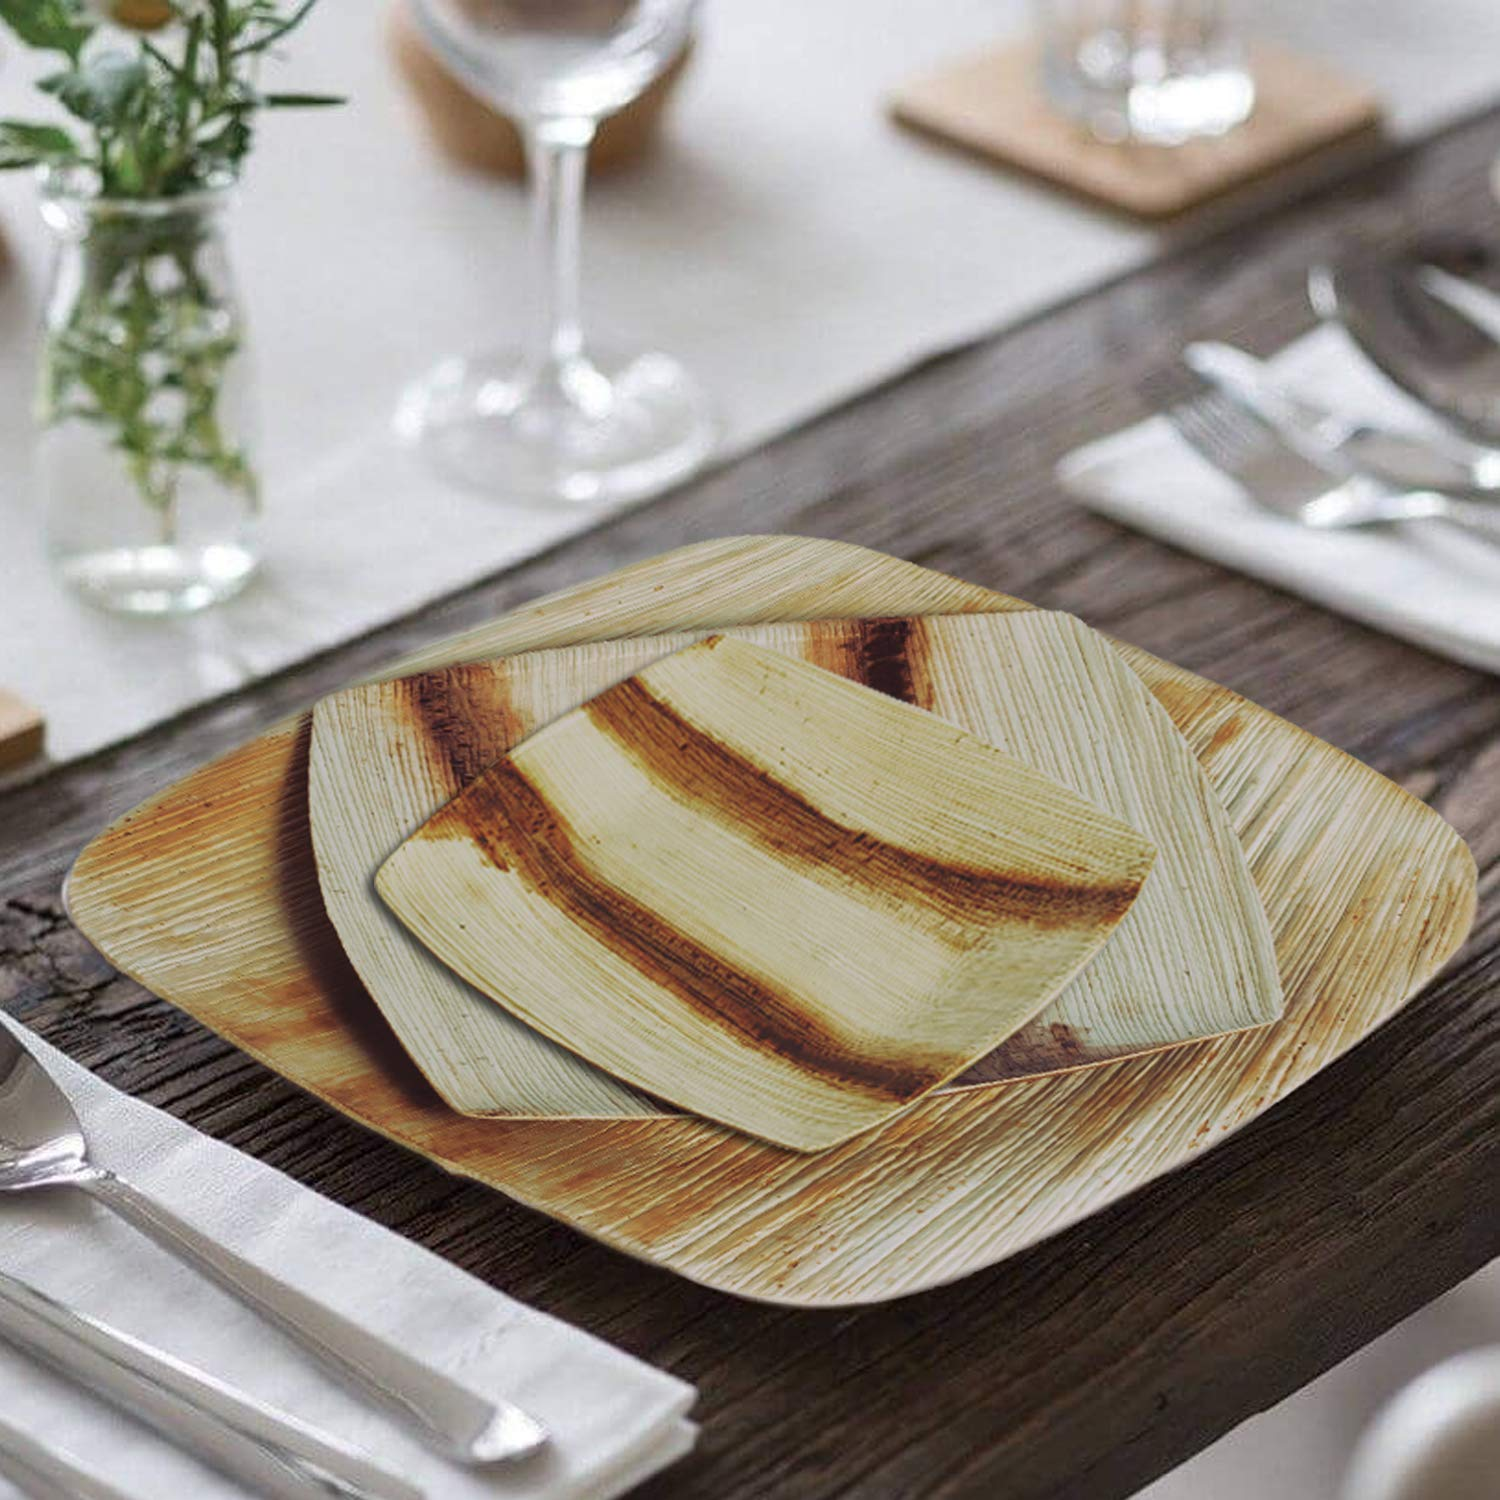 8'' Quadrato Square Disposable Palm Leaf Plates by Scrafts - Compostable,Biodegradable Heavy Duty Dinner Party Plate - Comparable to Bamboo Wood - Elegant Plant Based Dishware: (50 pcs Pack) by Scrafts (Image #3)